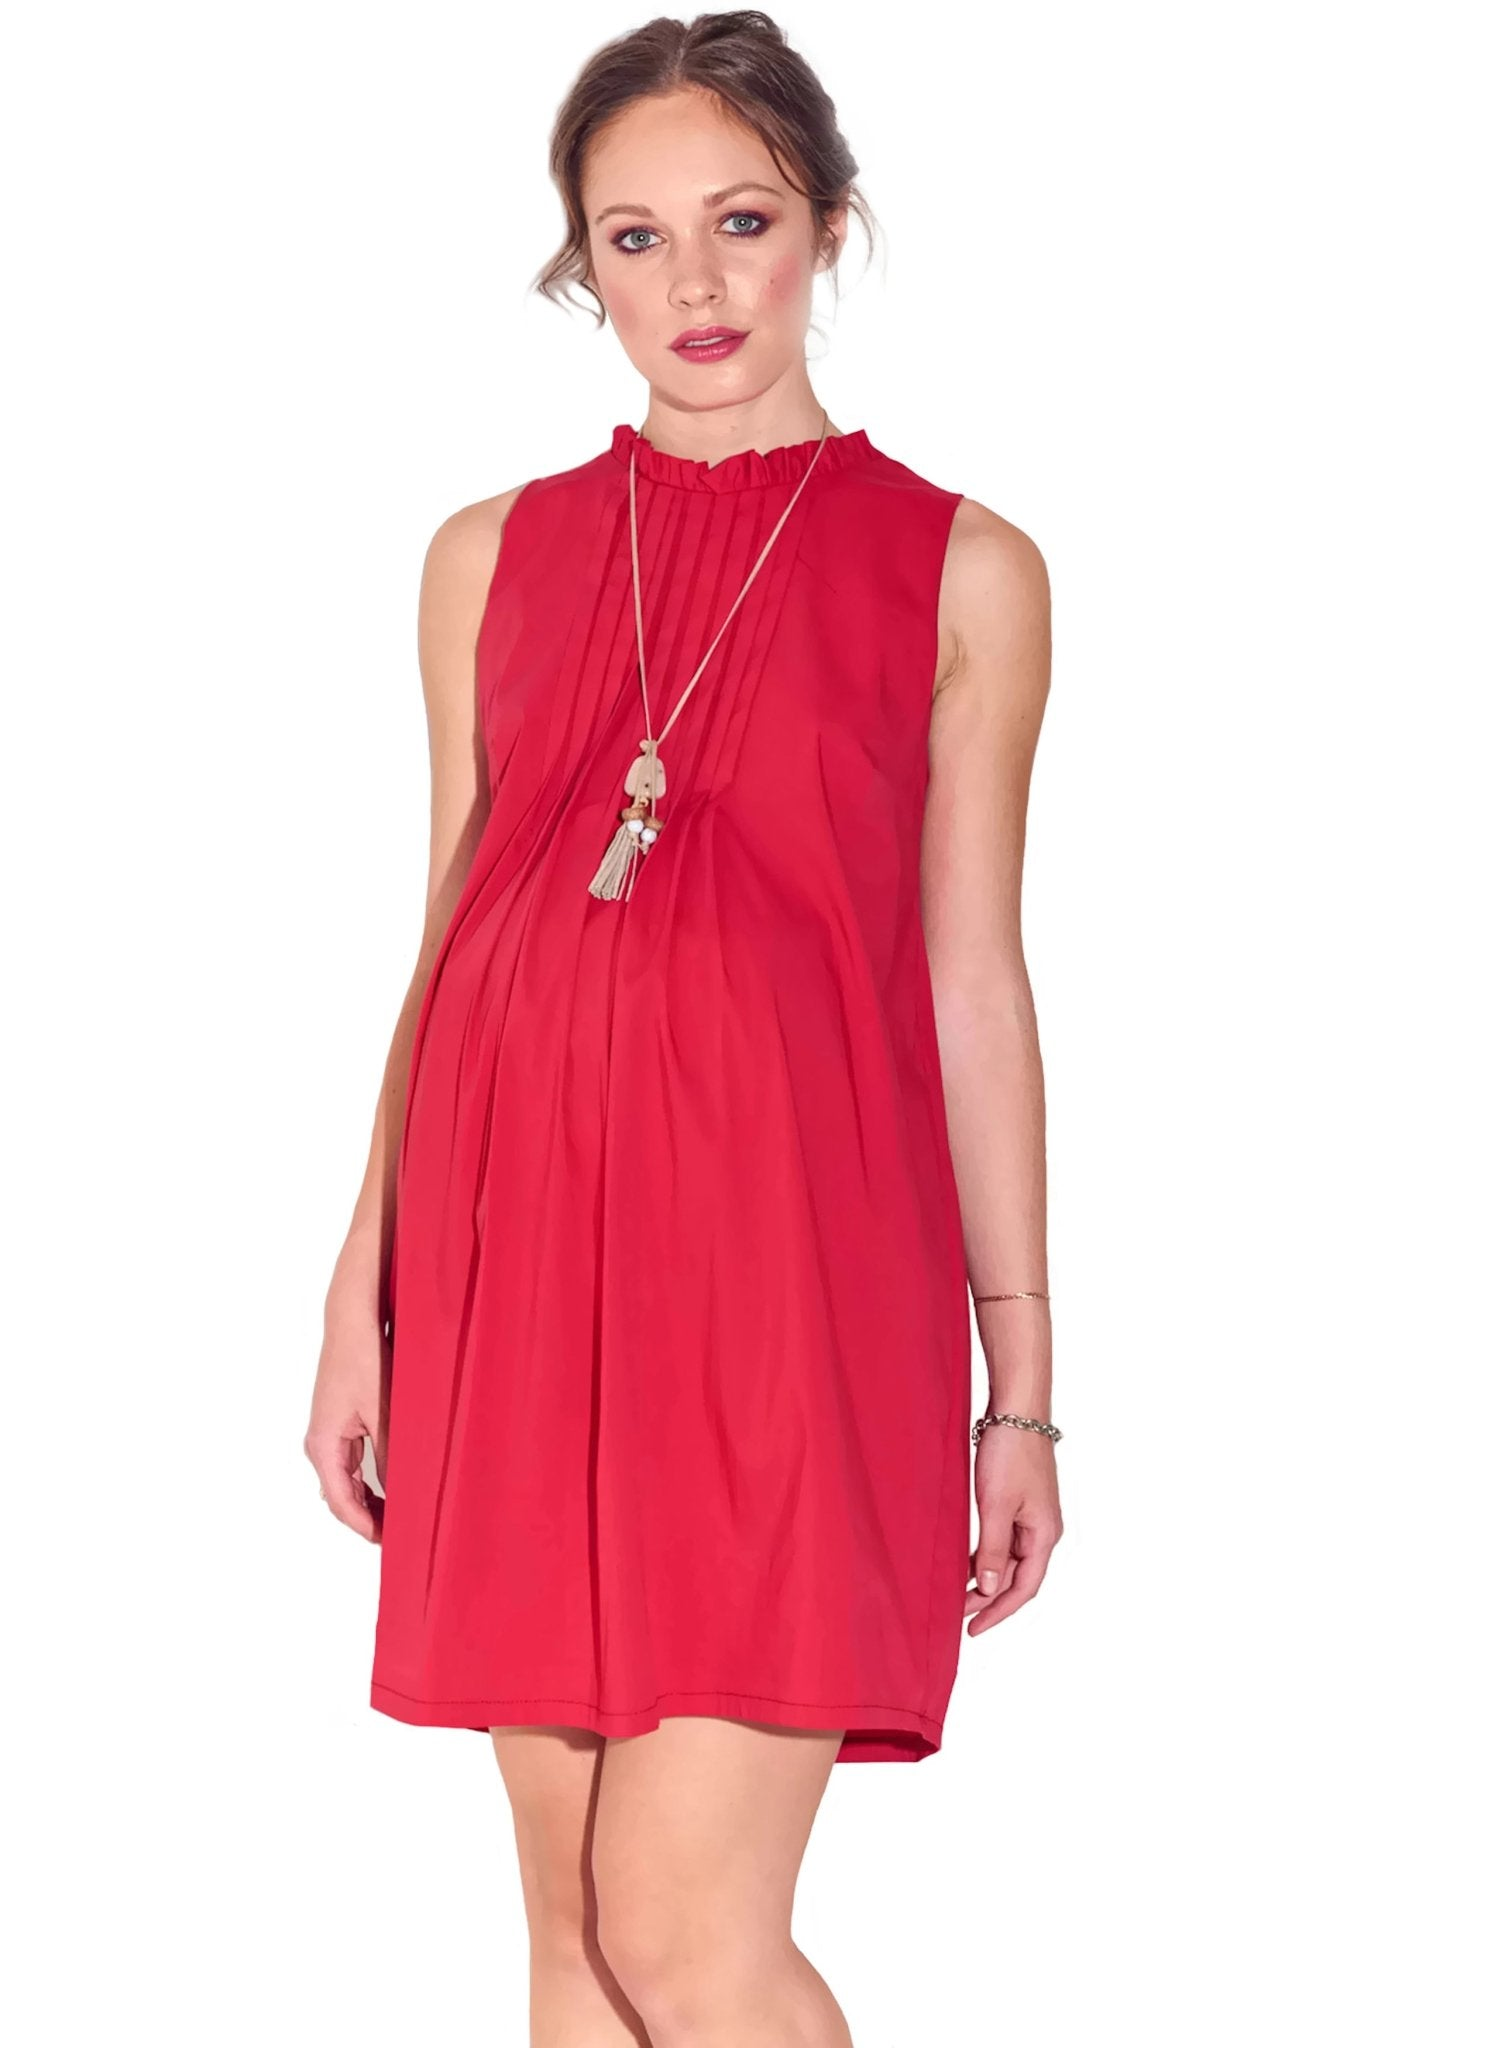 Red Ruffled Neck Dress - Mums and Bumps